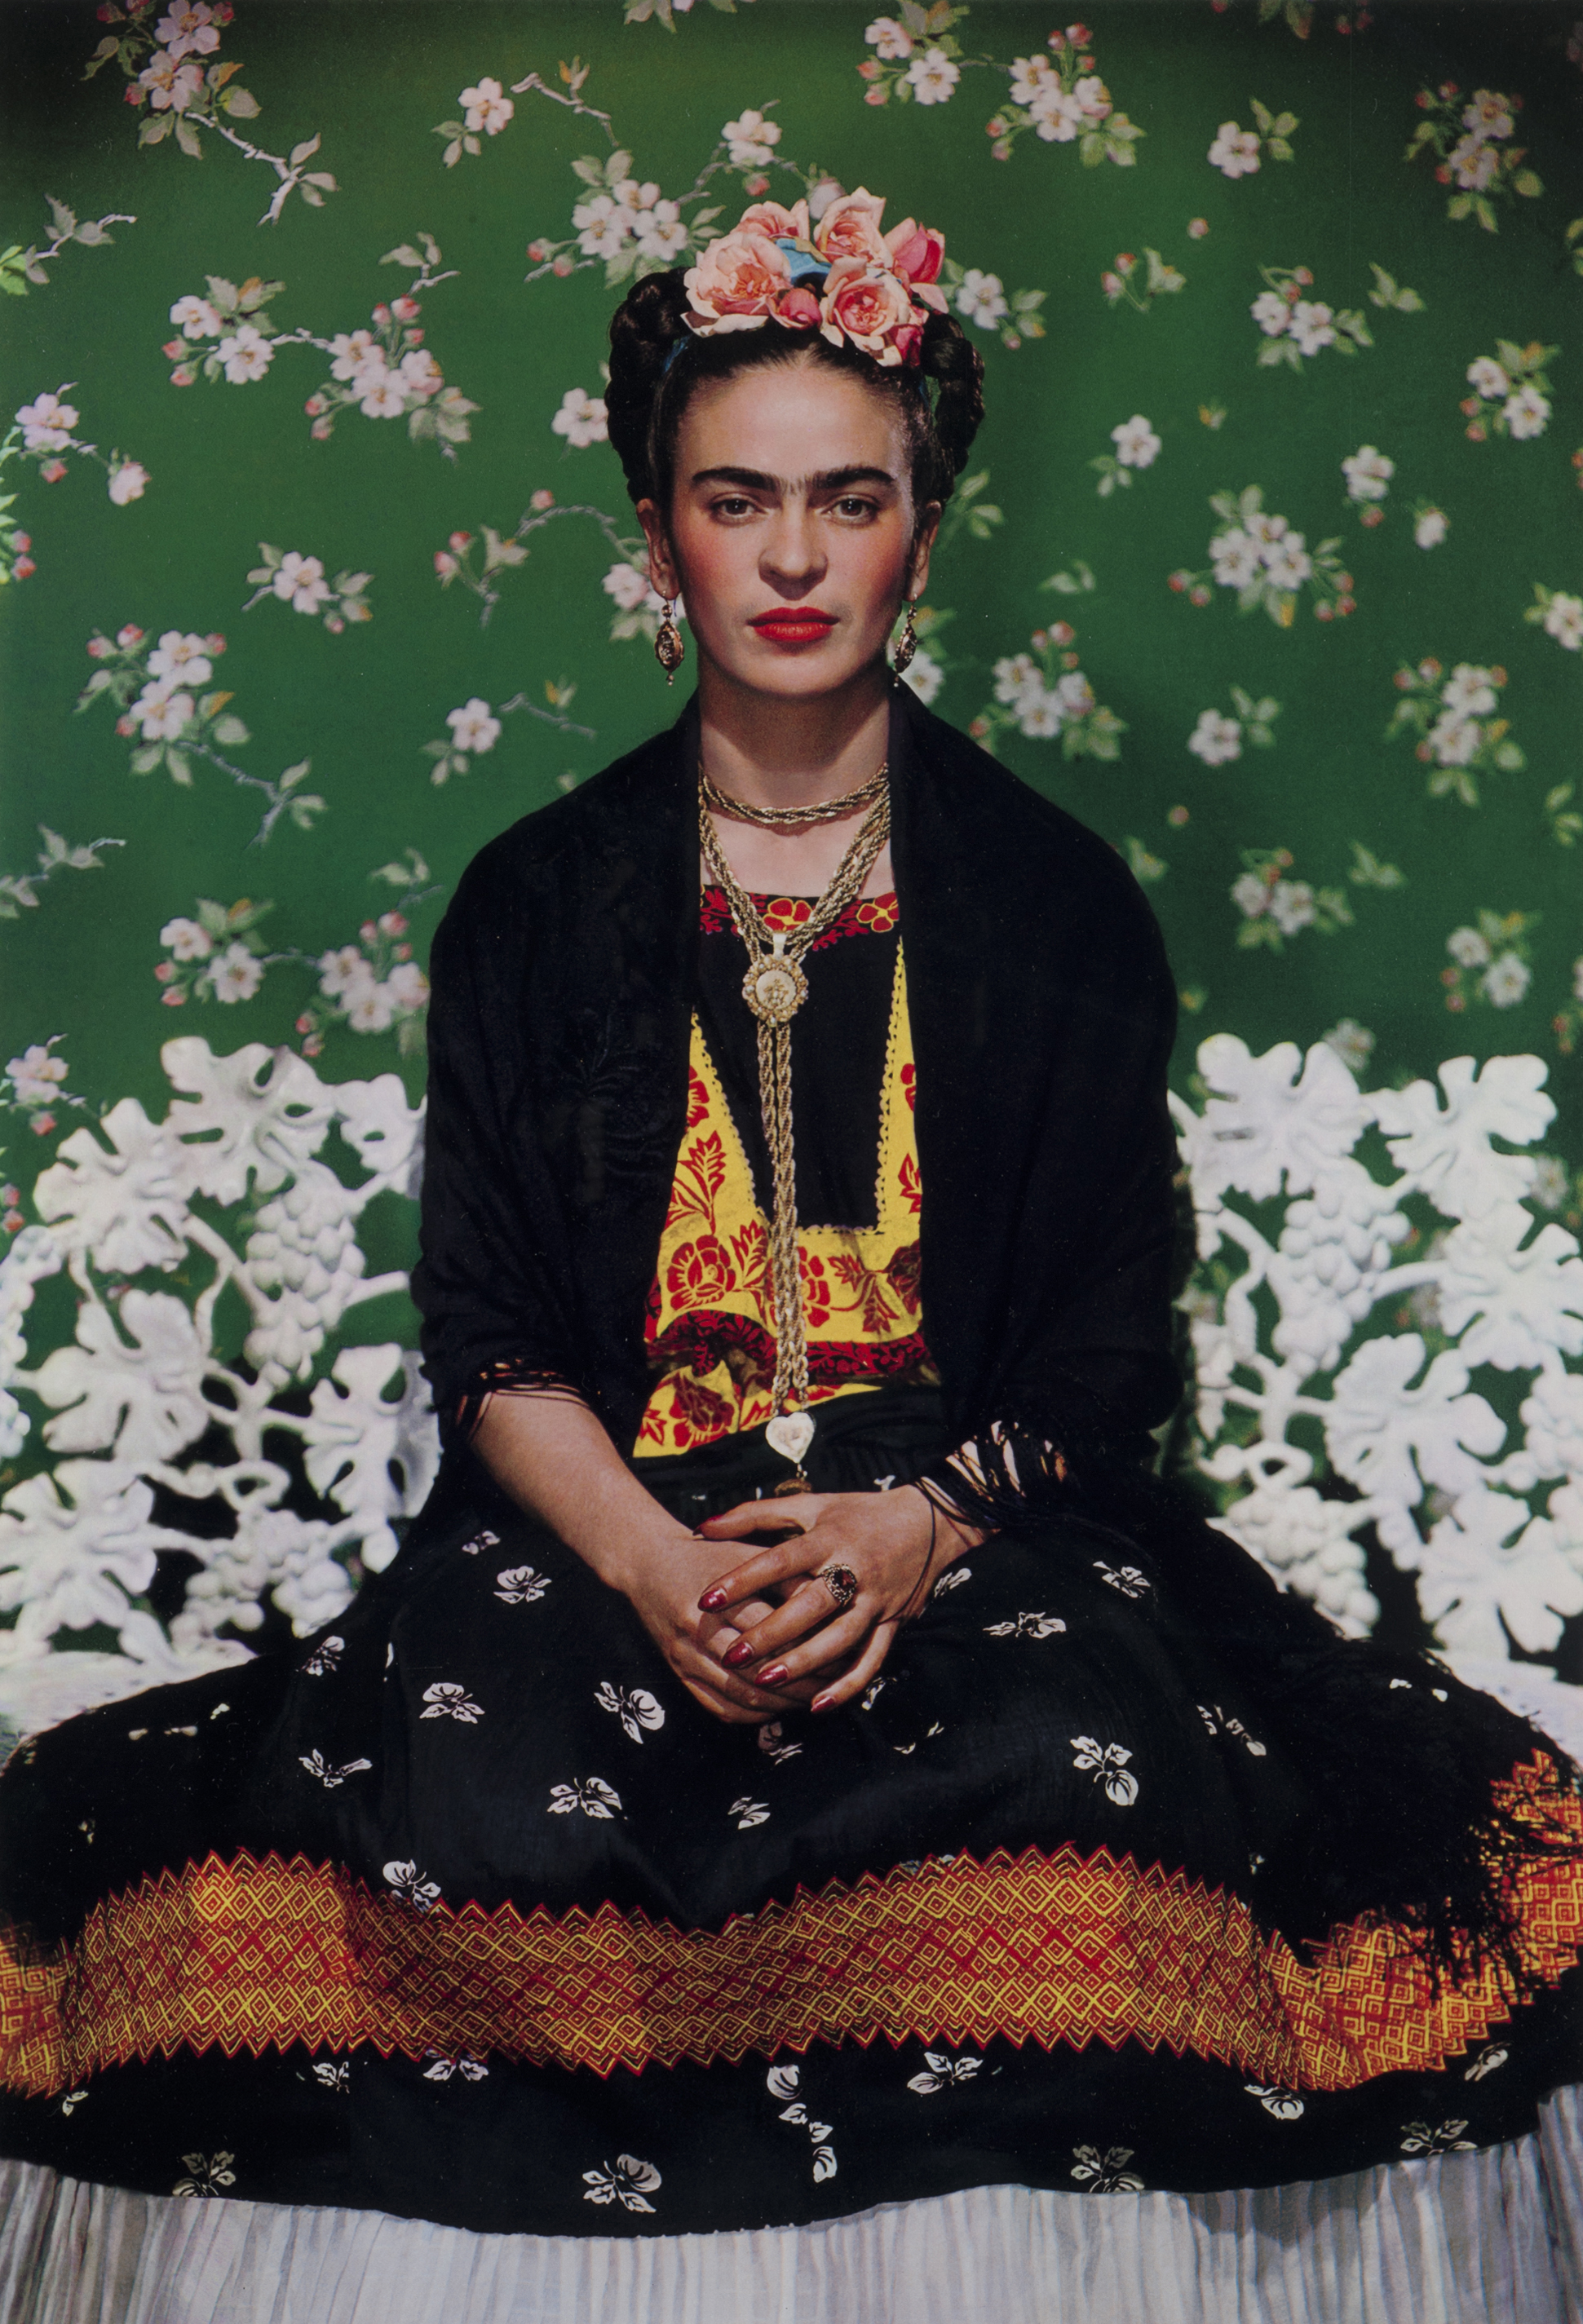 Frida Kahlo on White Bench, New York, 1939